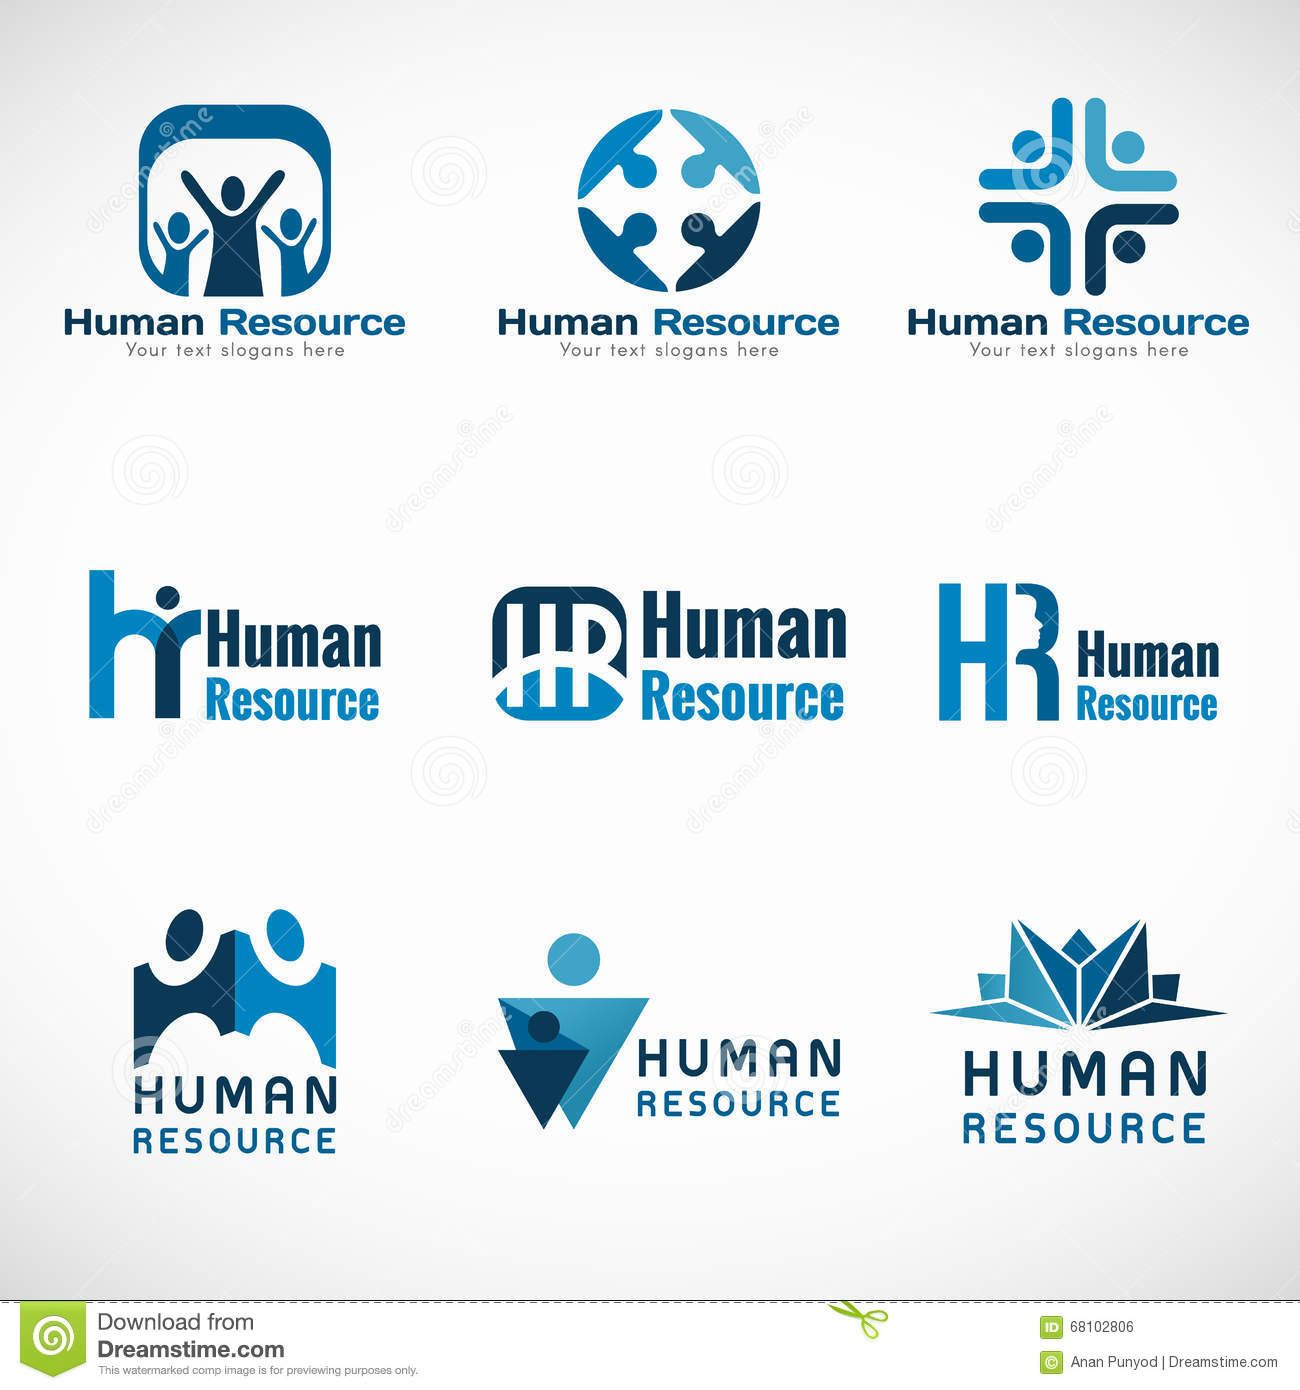 Human Resources (HR) Logo Vector Set Design For Business